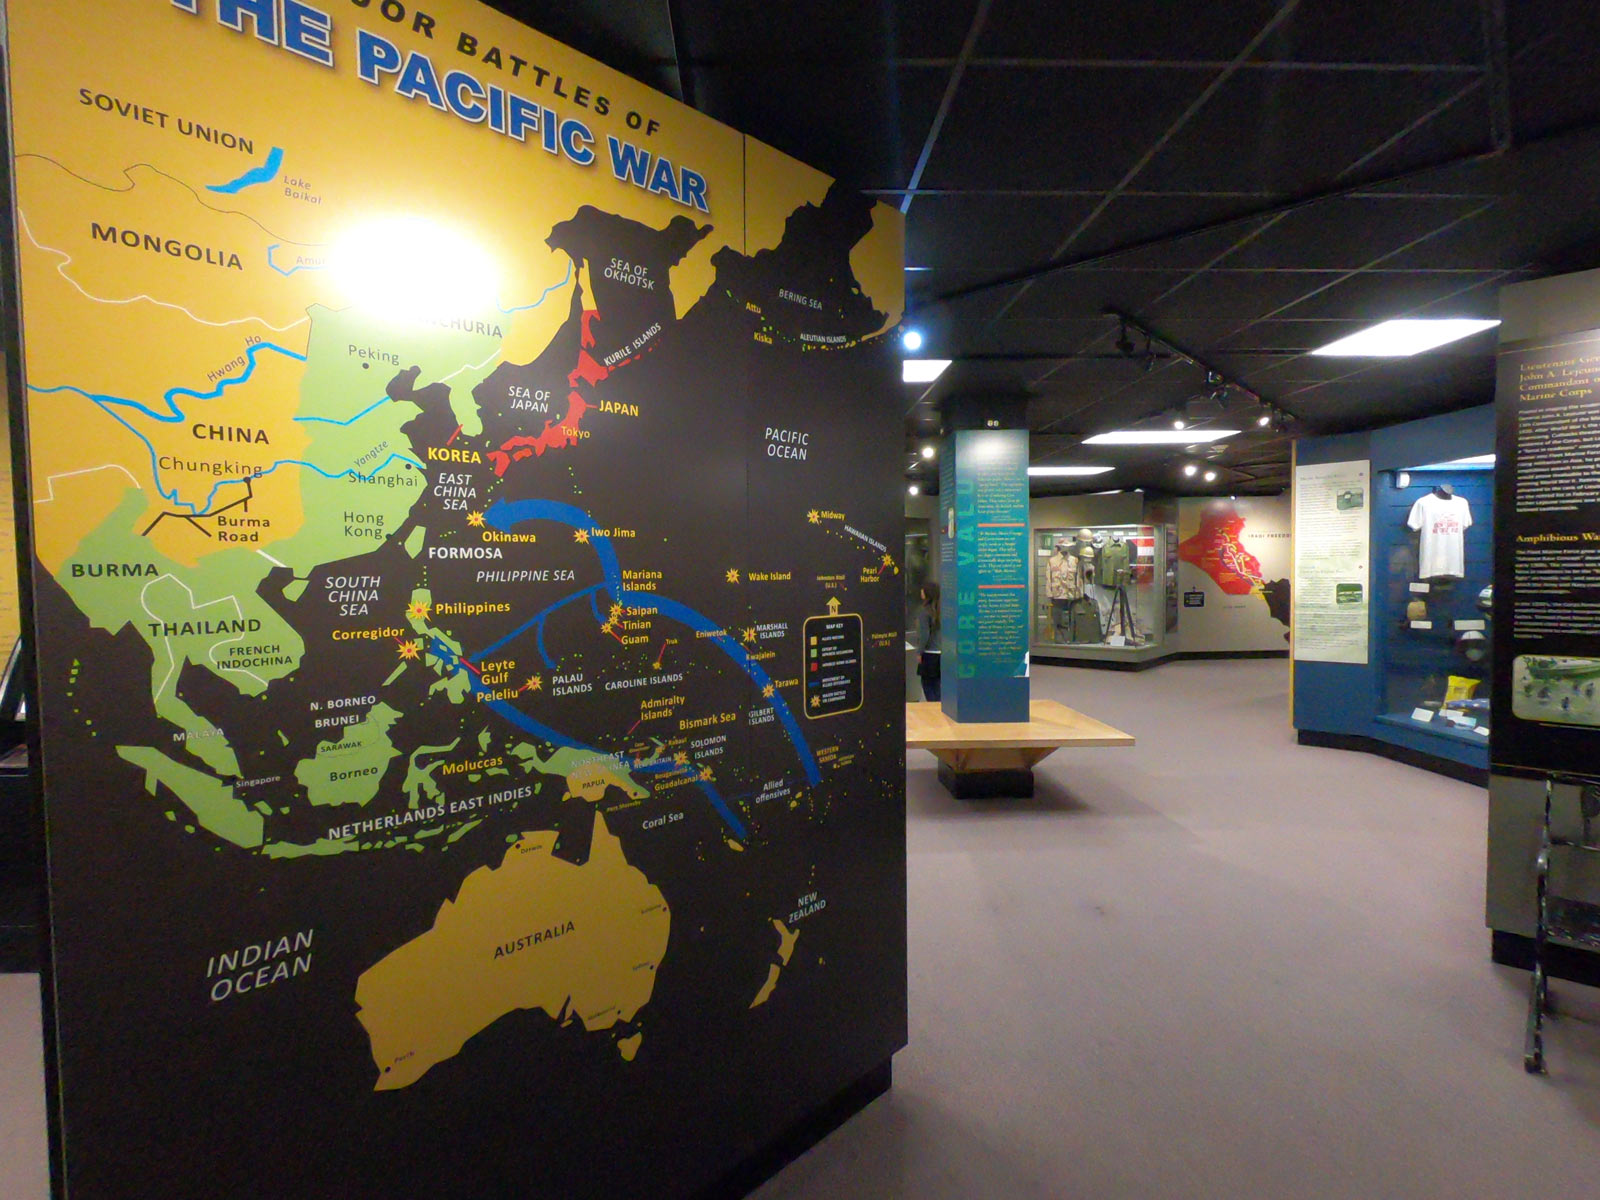 Exhibit on Battles of the Pacific at the Parris Island Museum, Beaufort, South Carolina